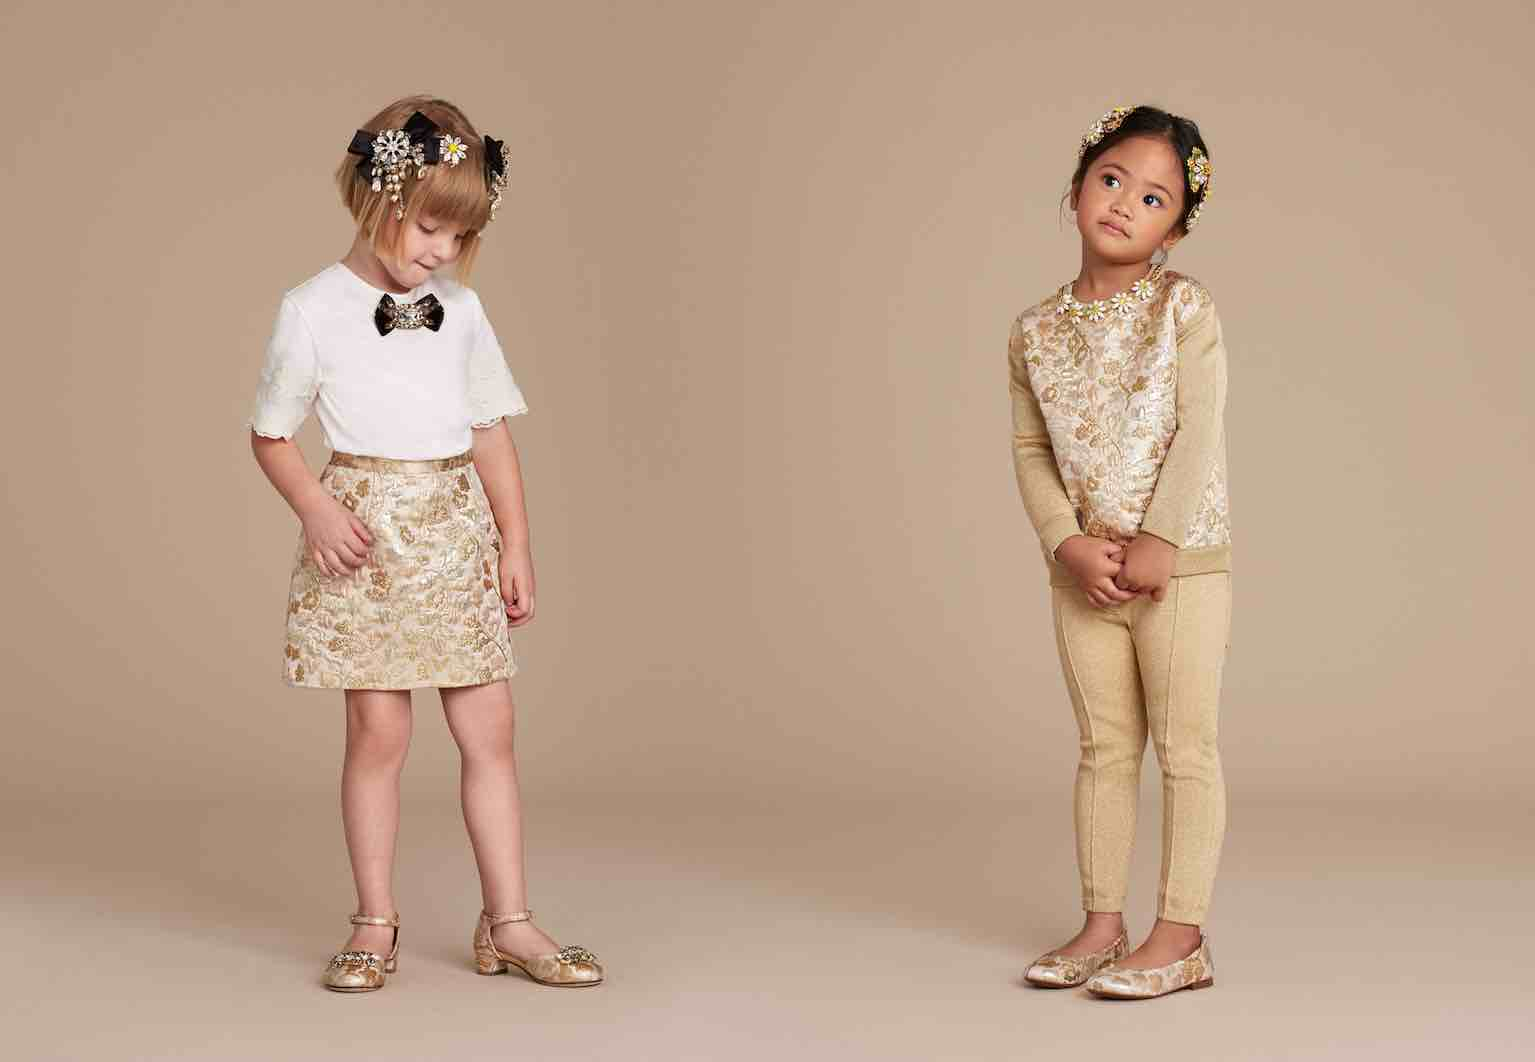 Harrods children's wear Spring/Summer 16